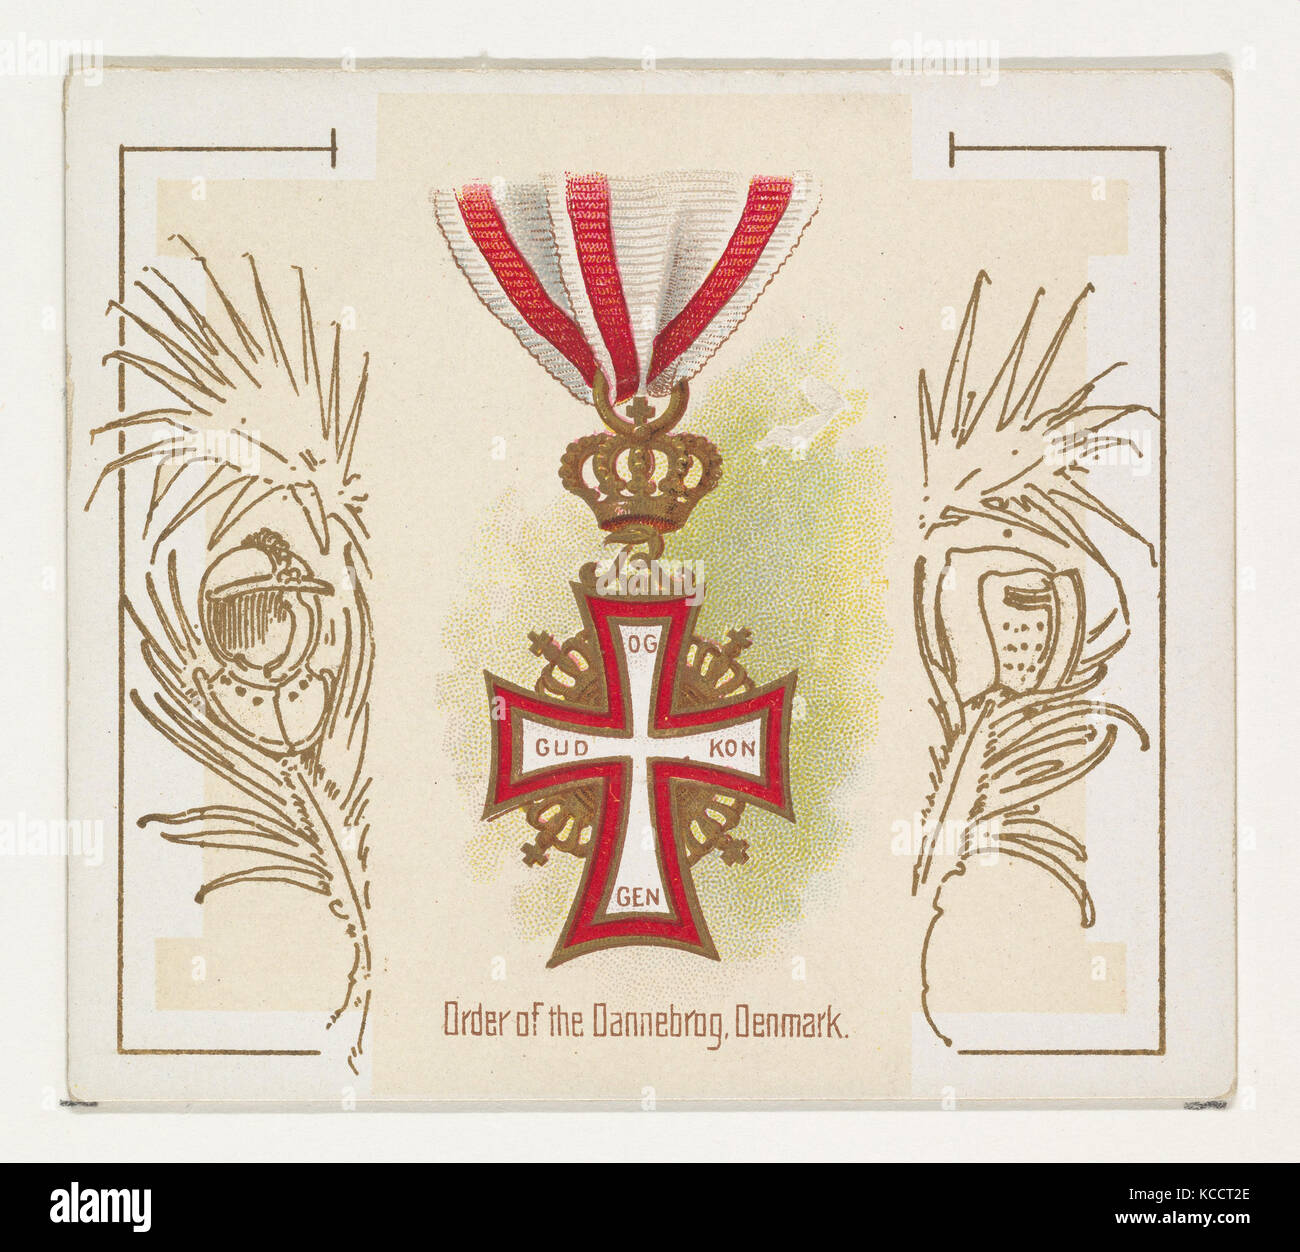 Order of the Dannebrog, Denmark, from the World's Decorations series (N44) for Allen & Ginter Cigarettes, - Stock Image